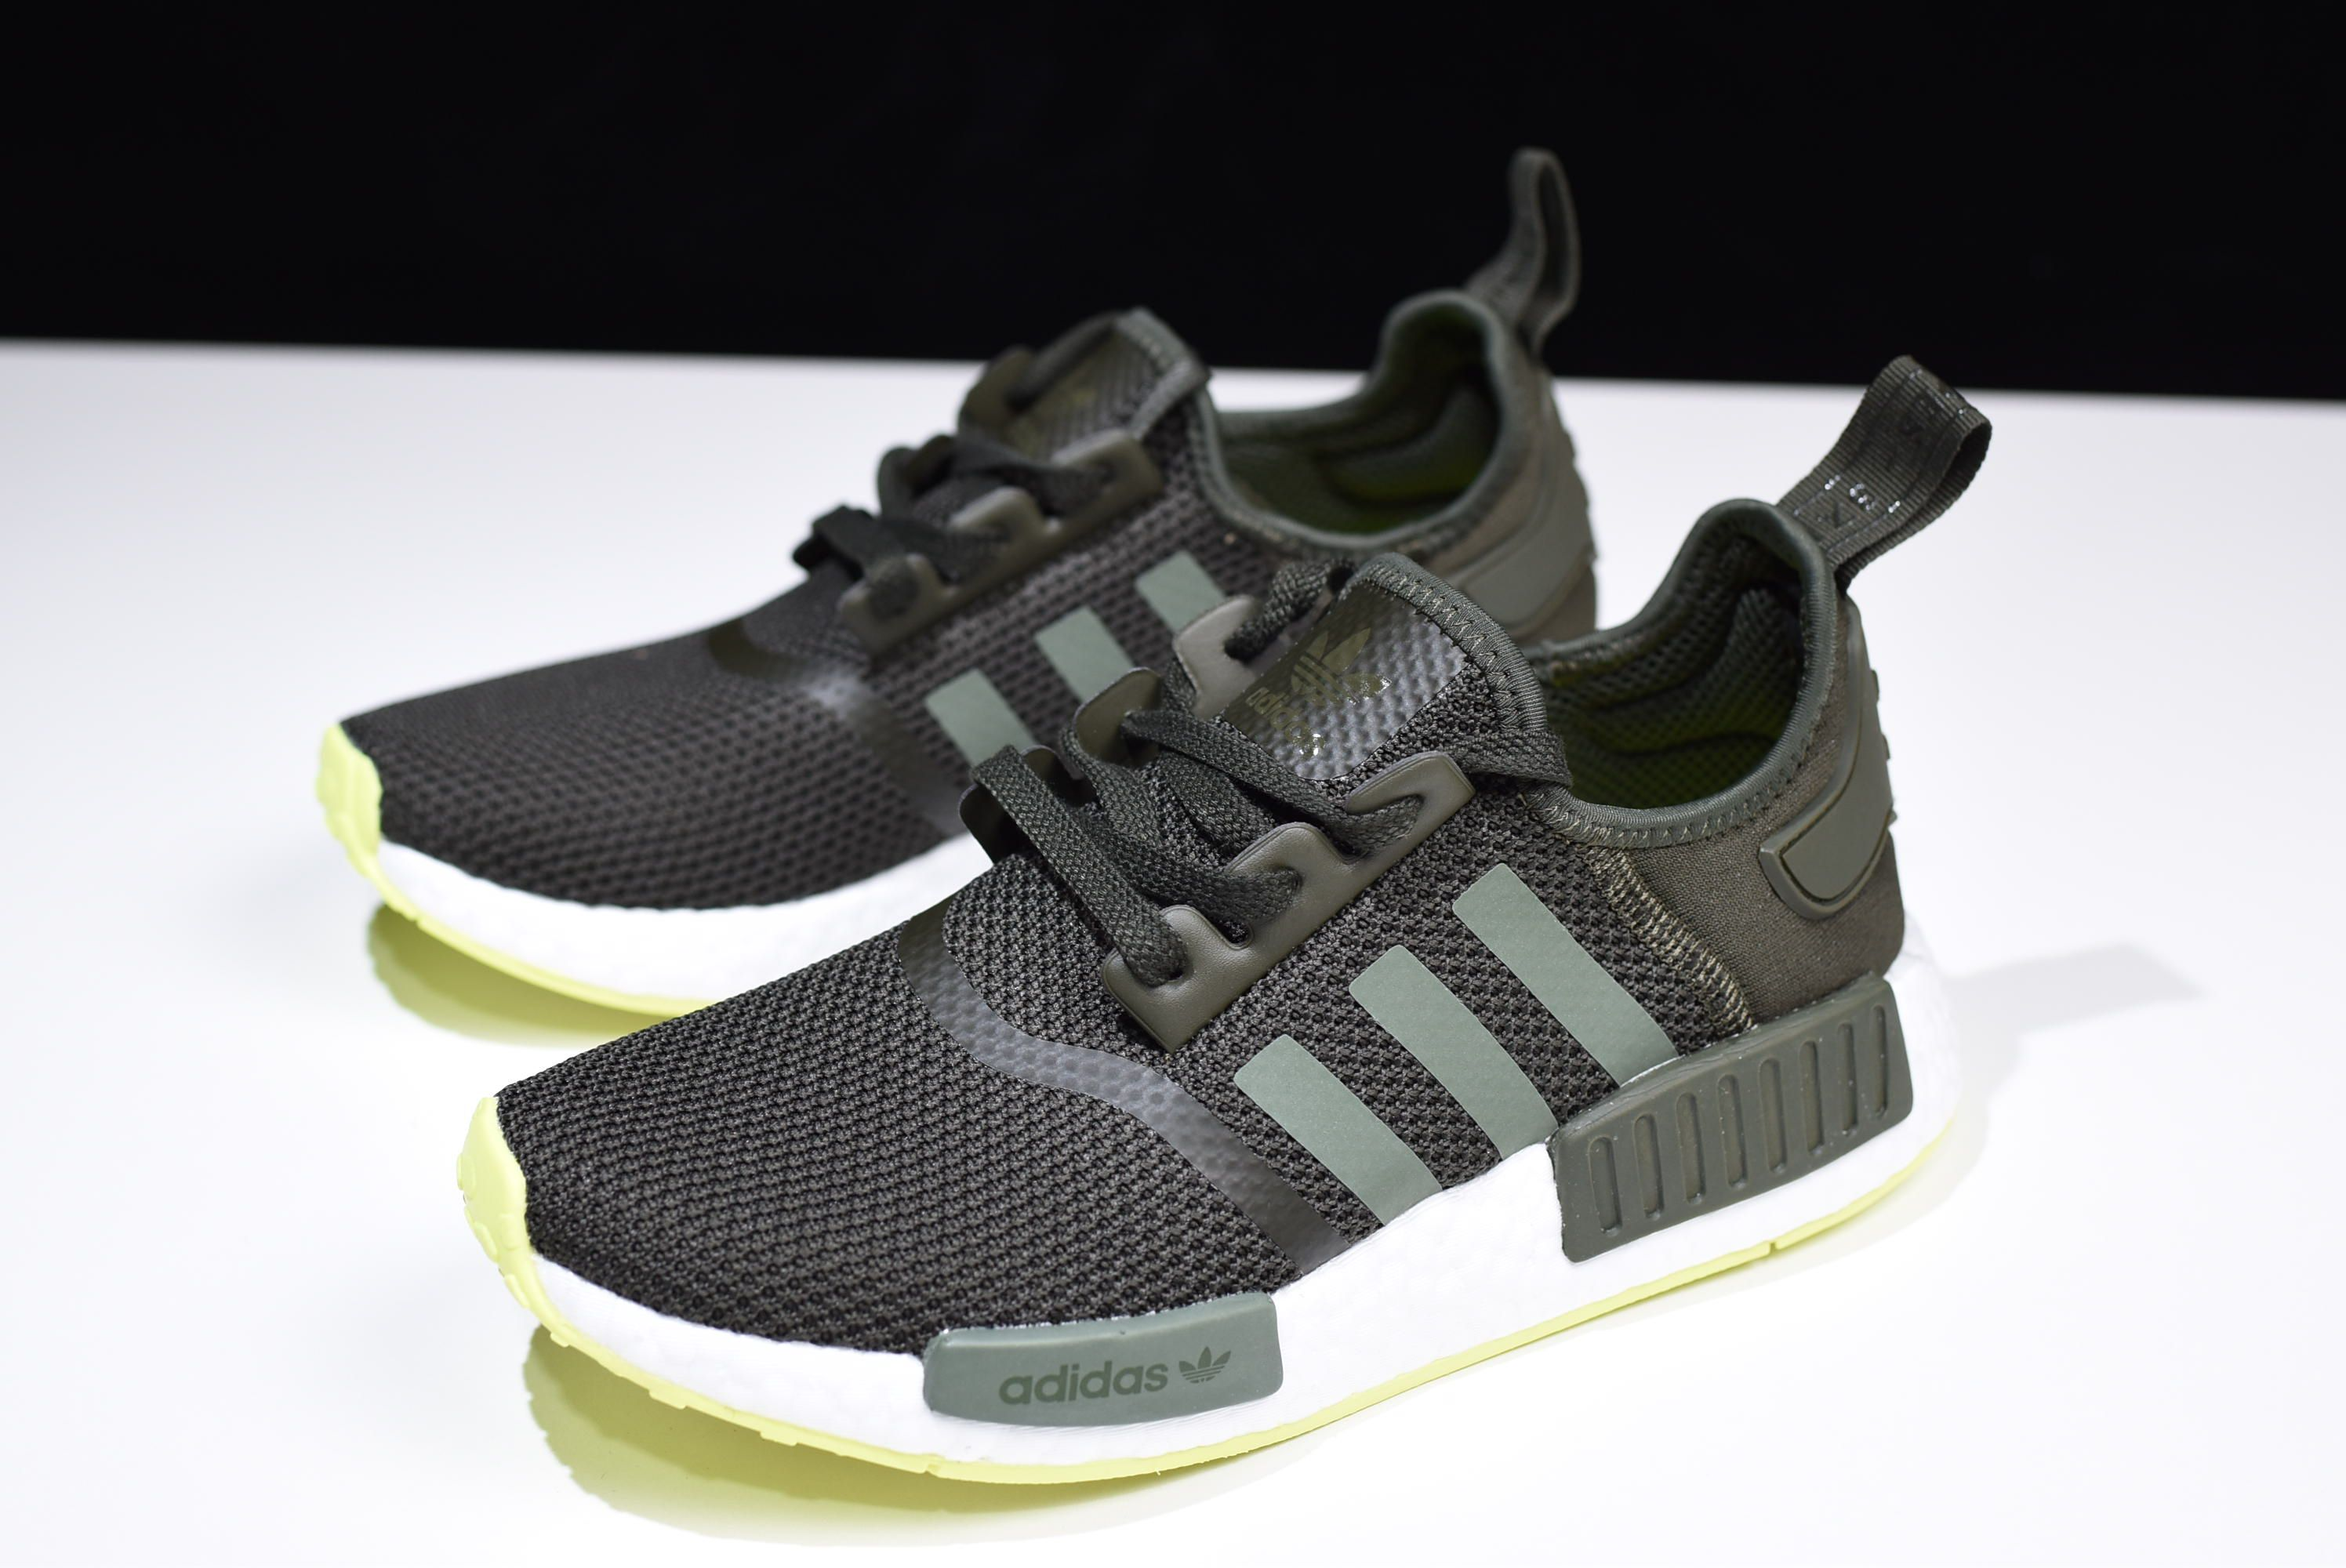 new product e67cc a2d95 2018 adidas NMD R1 Night CargoBase Green-Semi Frozen Yellow CQ2414